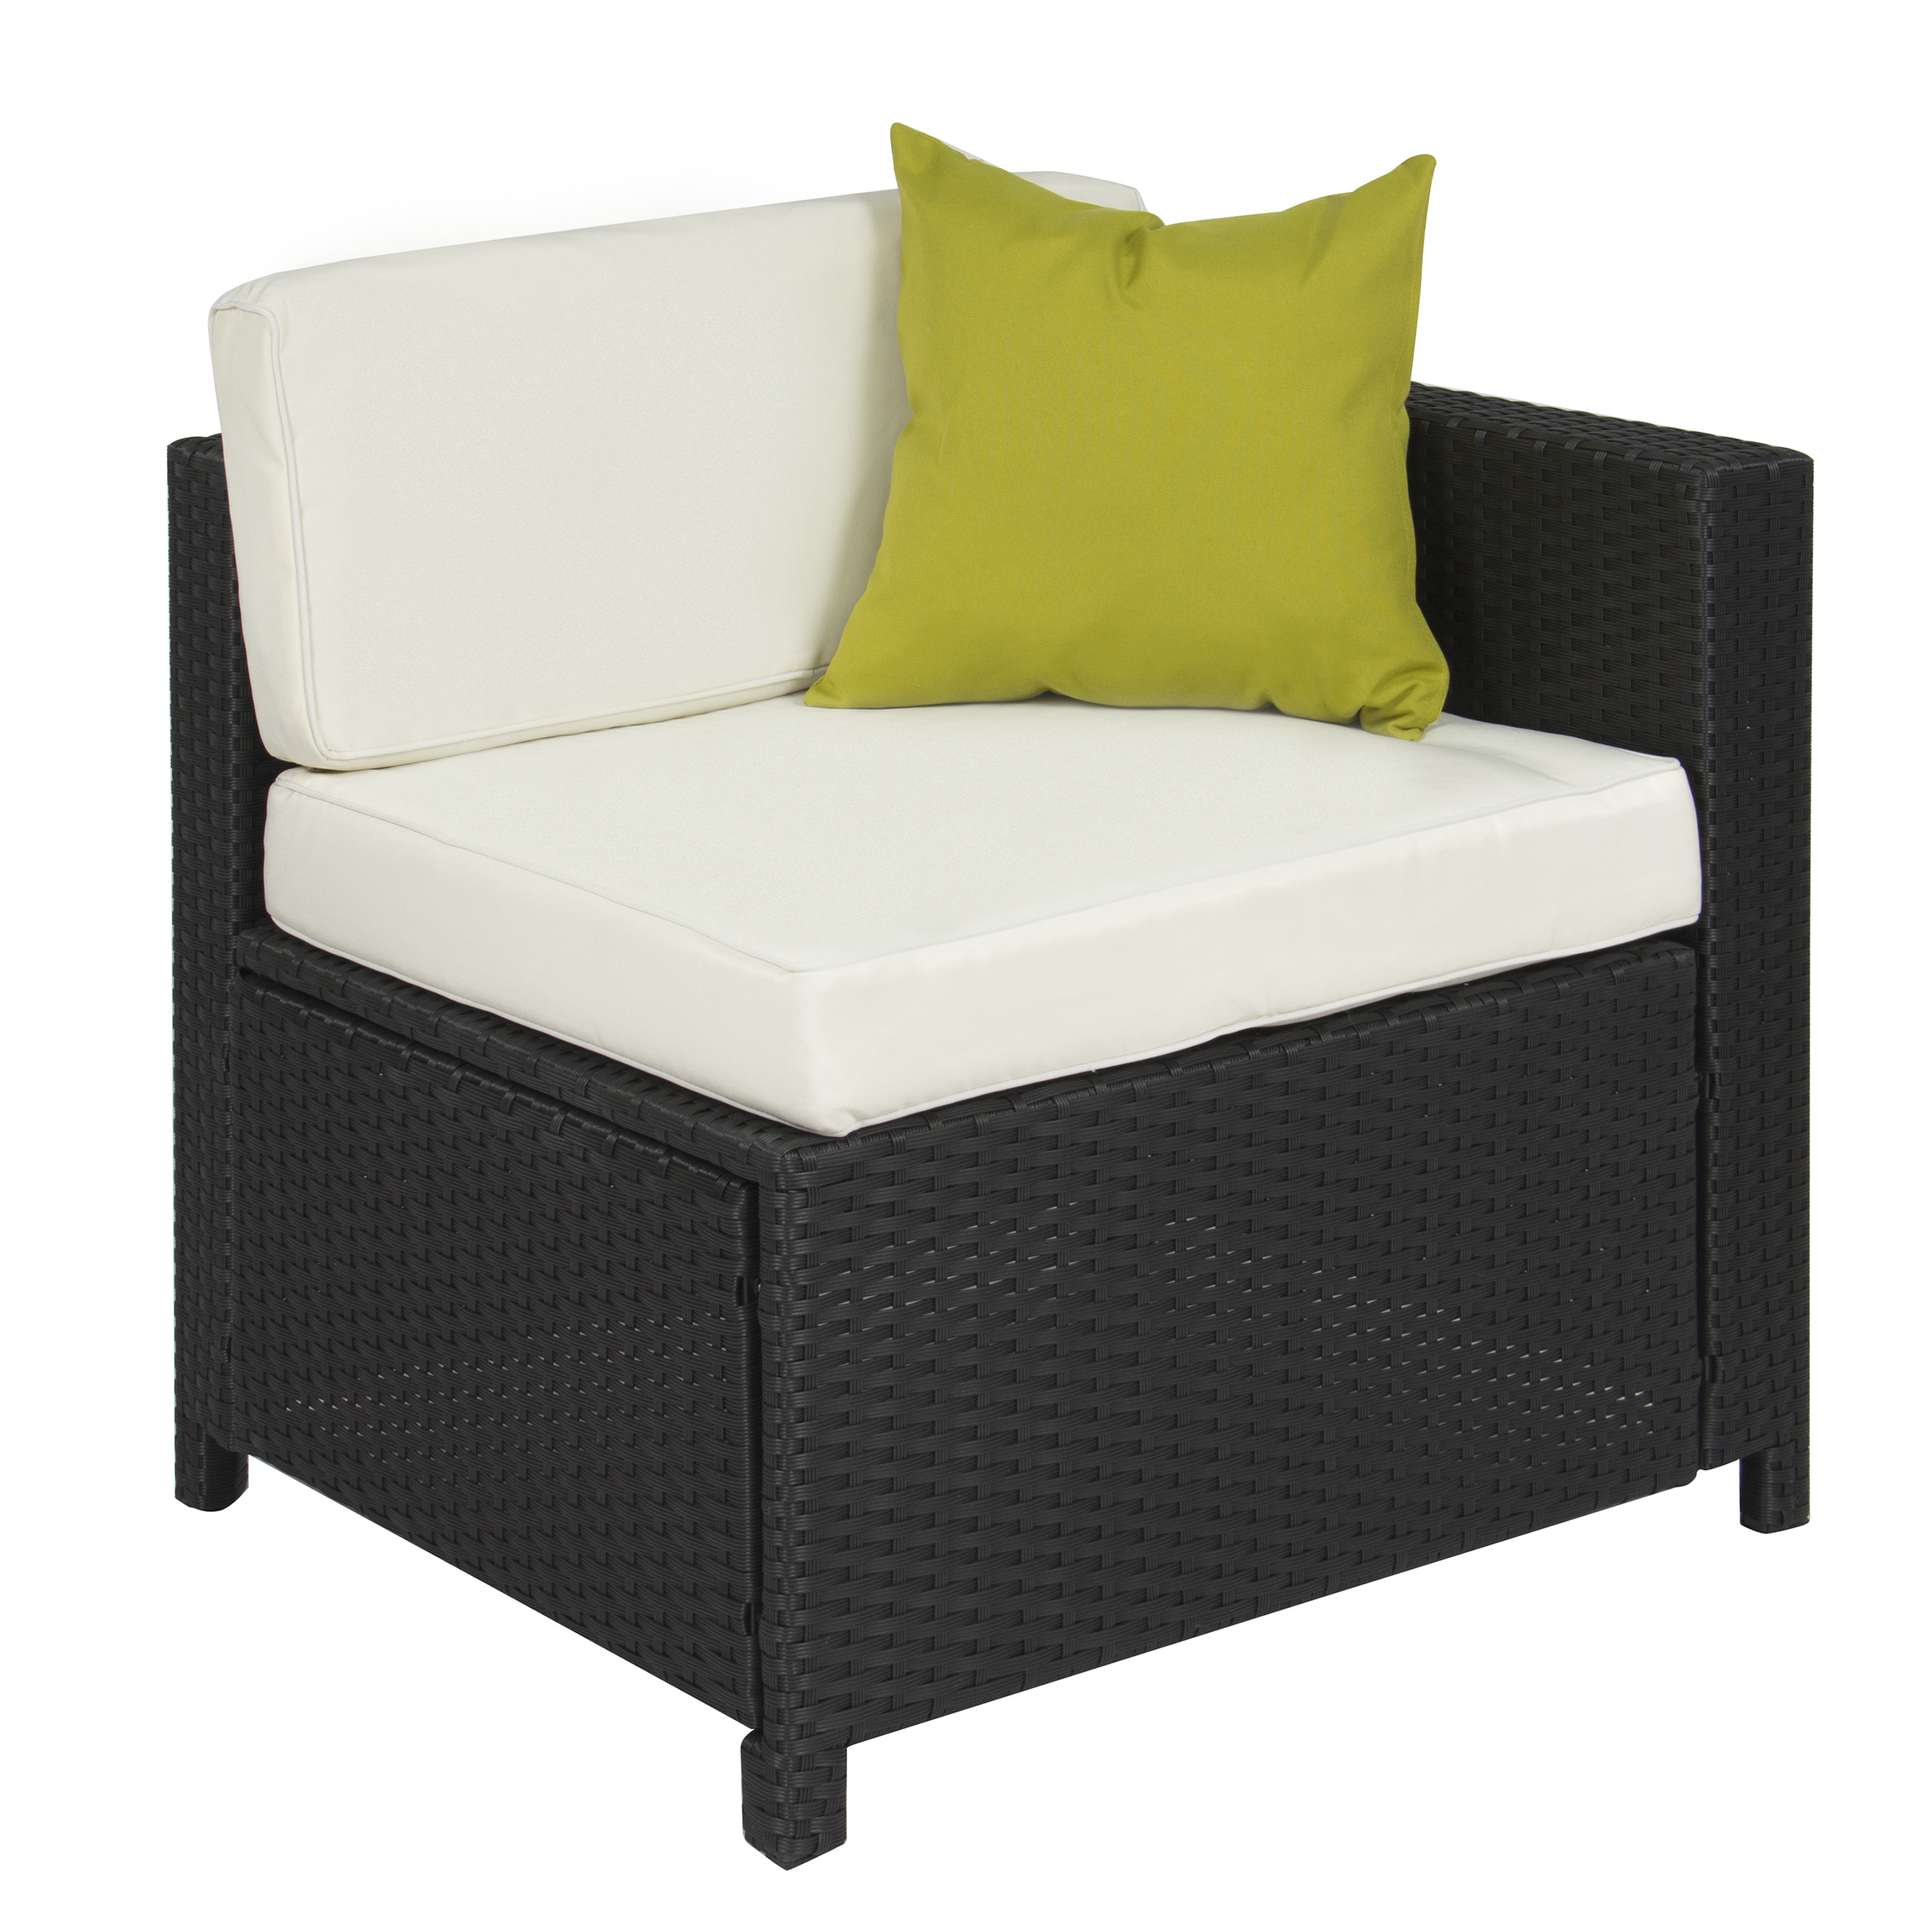 Captivating Outdoor Patio Furniture Cushioned 5PC Rattan Wicker Aluminum Frame  Sectional Sofa Set   Walmart.com